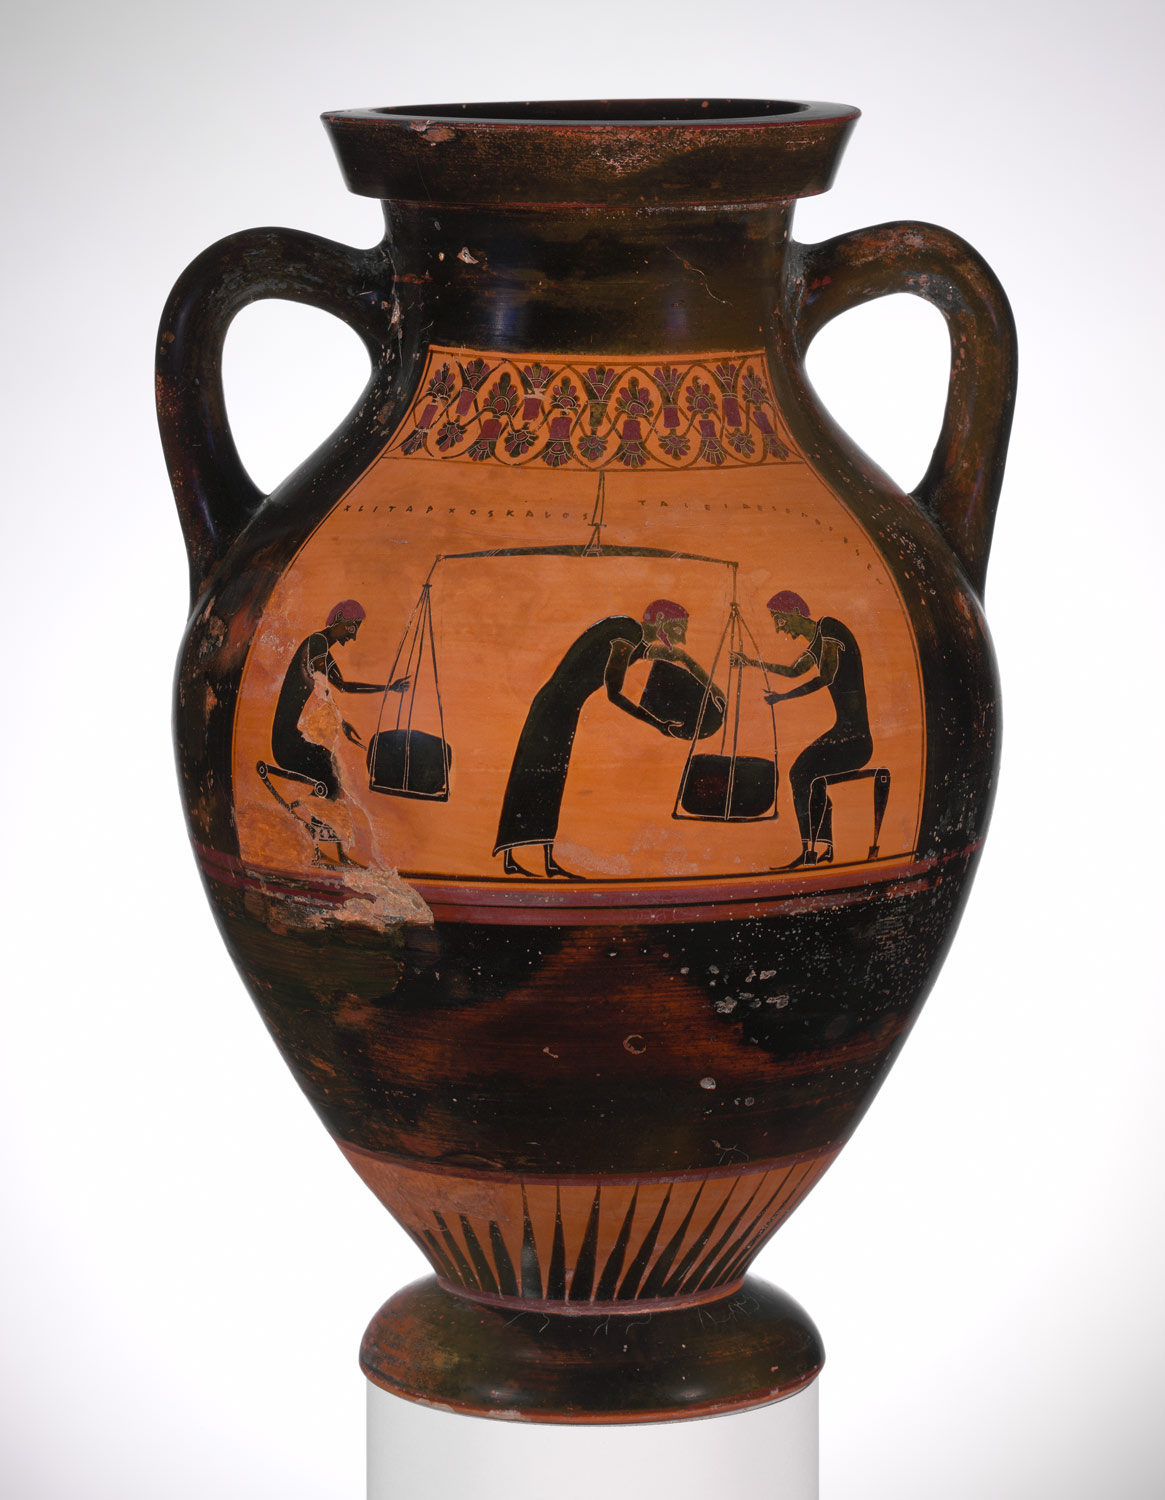 greek culture essays The culture of greece has evolved over thousands of years, beginning in mycenaean greece, continuing most notably into classical greece, through the influence of the.